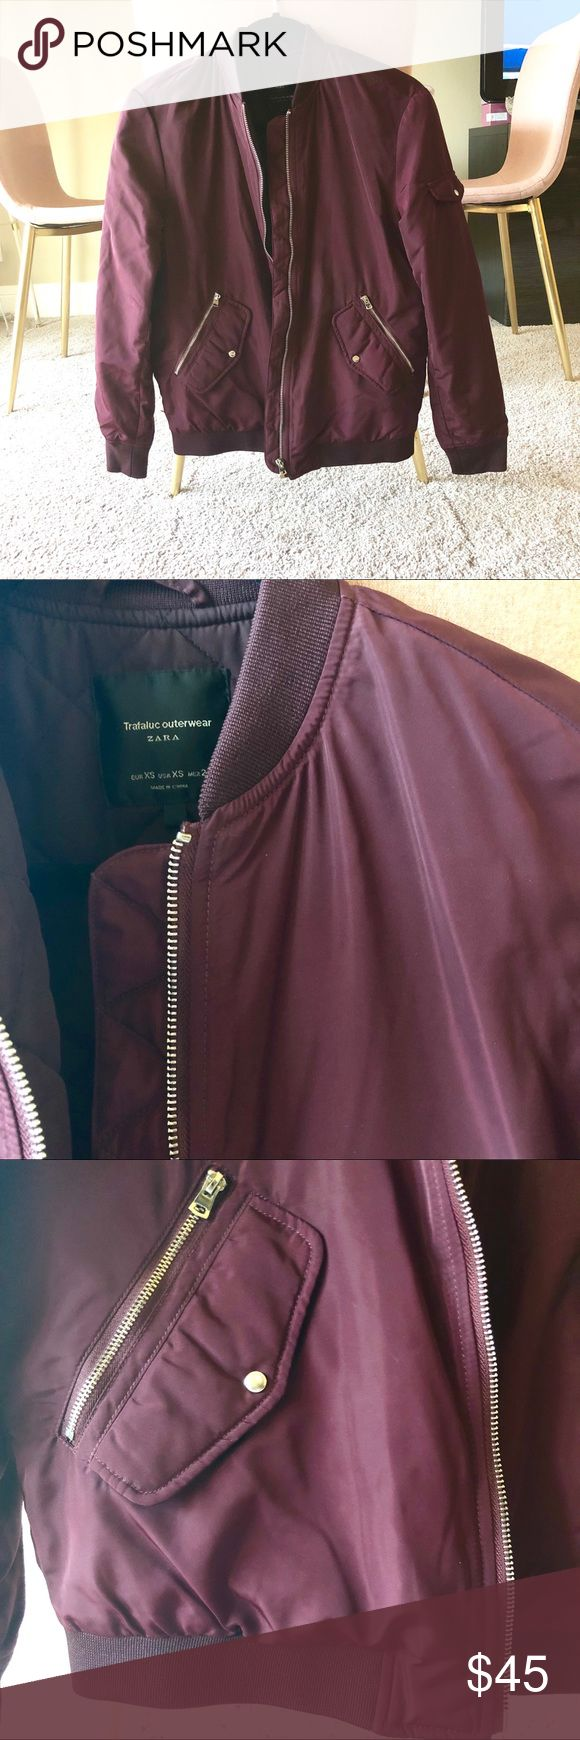 Zara Bomber Jacket Zara Bomber Jacket in Burgundy. 2 buttoned pockets and 2 zipper pockets.  Water resistant material. Light gold hardware. Not an overly puffy jacket, a very flattering women's style bomber without looking too large. Gently used, worn 5x. Zara Jackets & Coats